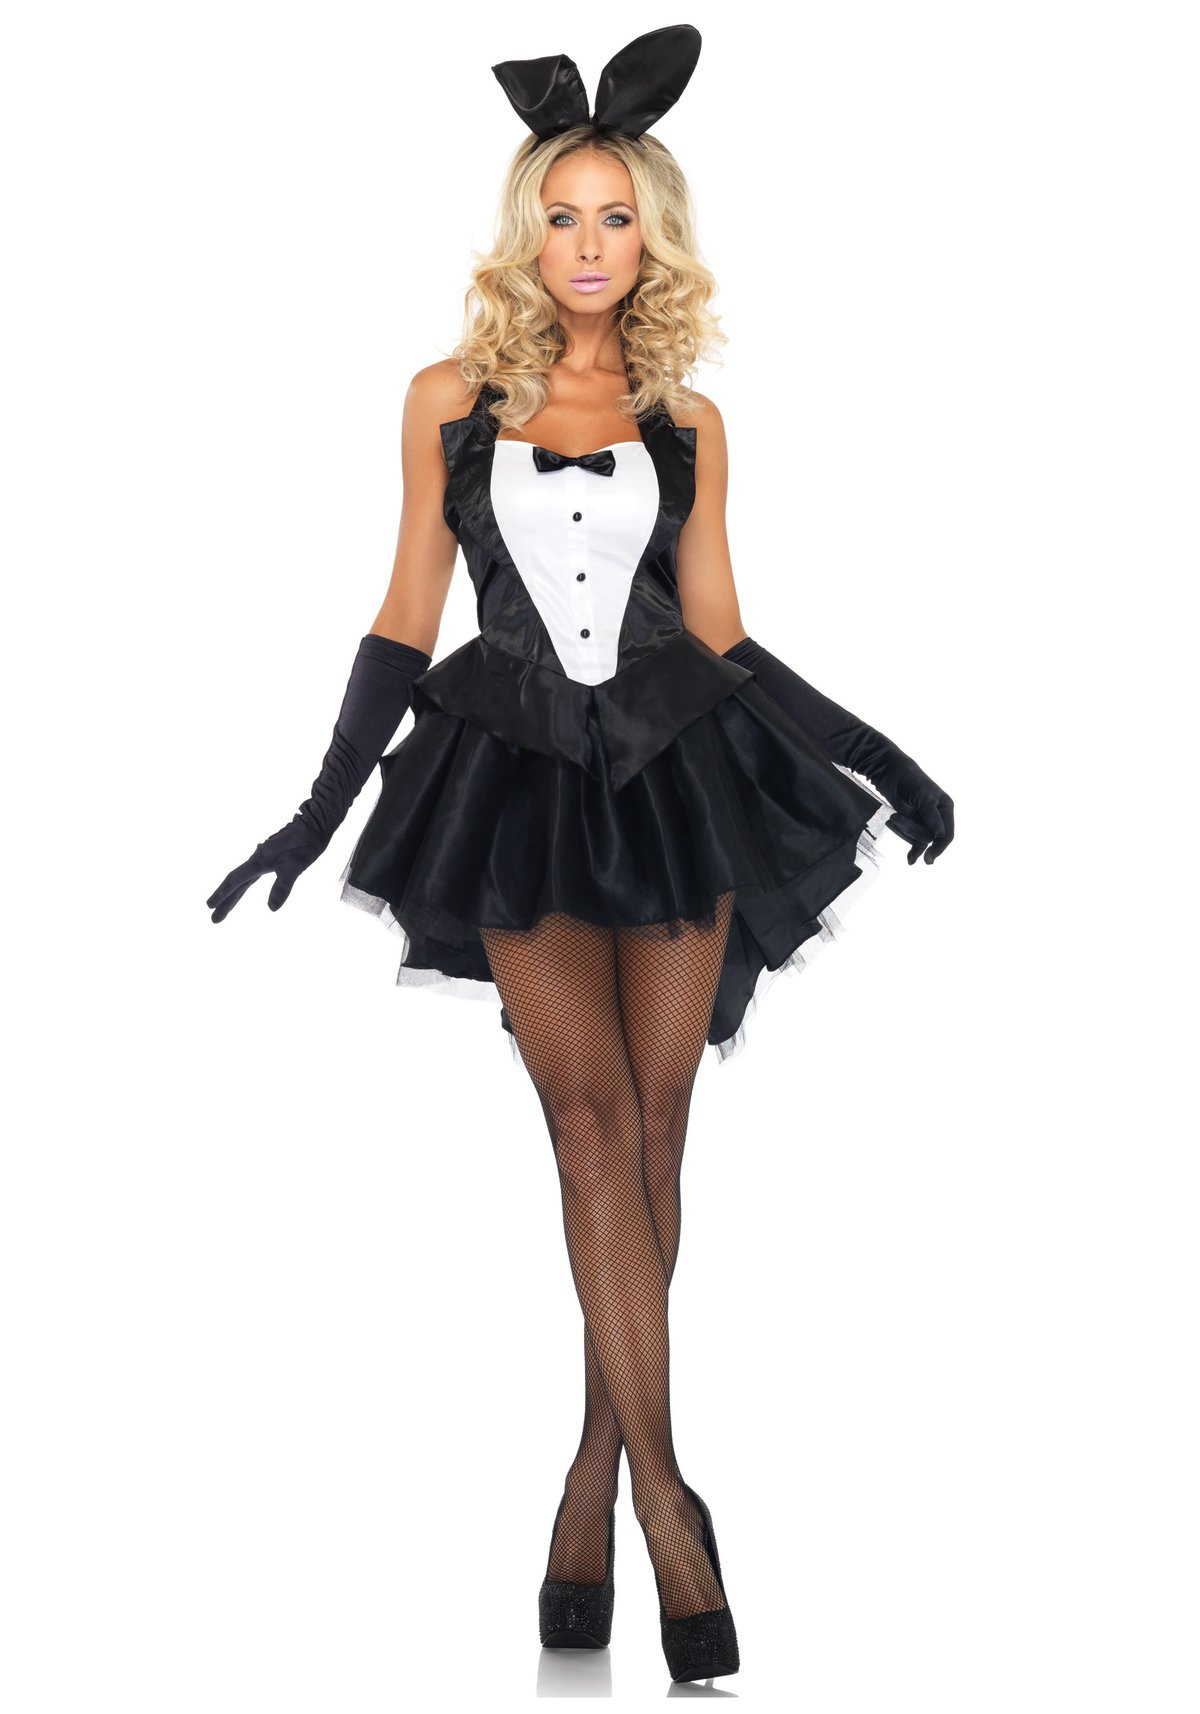 Girl adult halloween costume 10